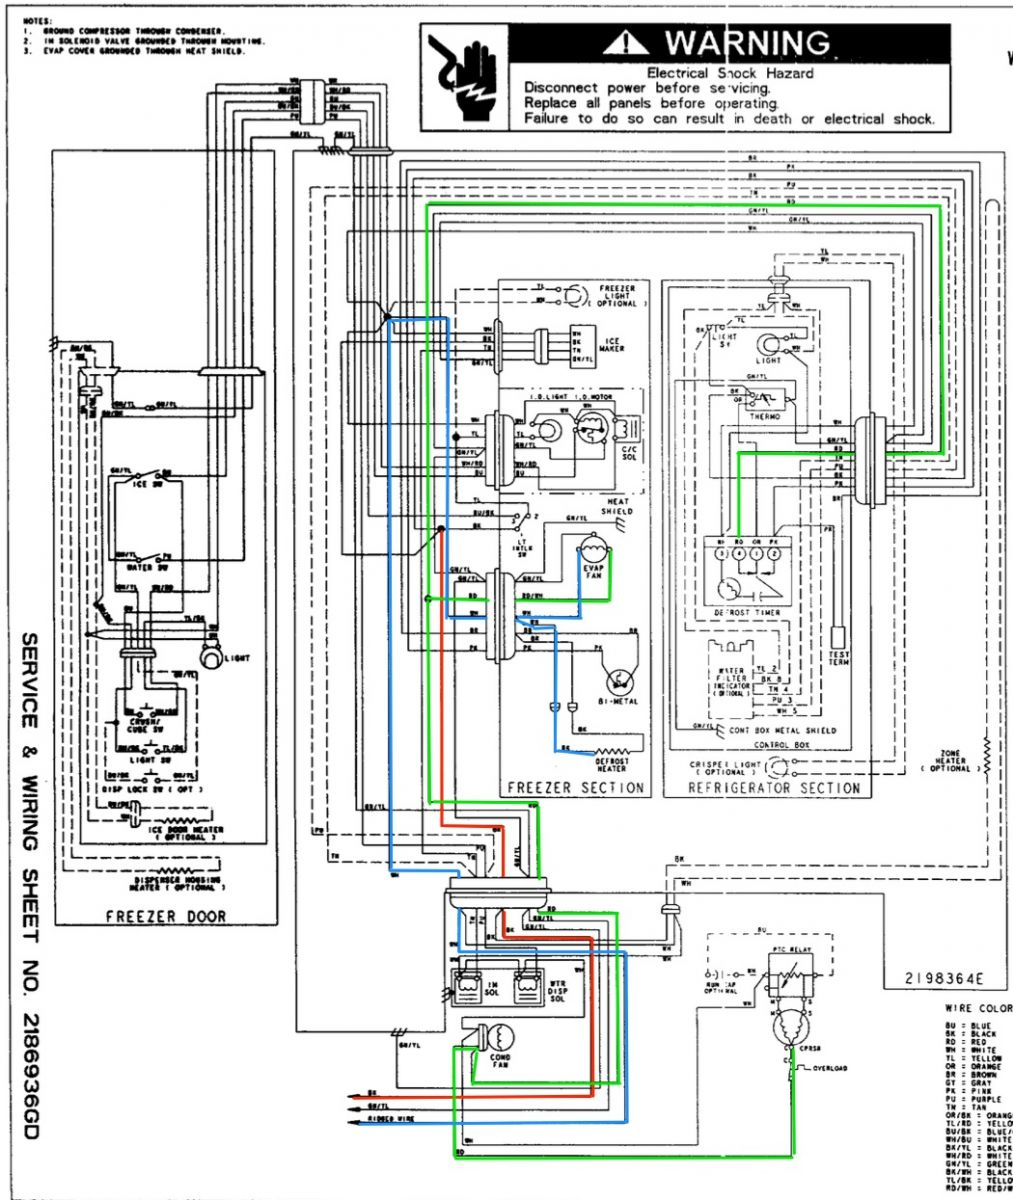 Whirlpool Washer Electrical Diagram Archive Of Automotive Wiring Washing Machine Dryer Ler4634 Data Schema Rh Site De Joueurs Com Duet